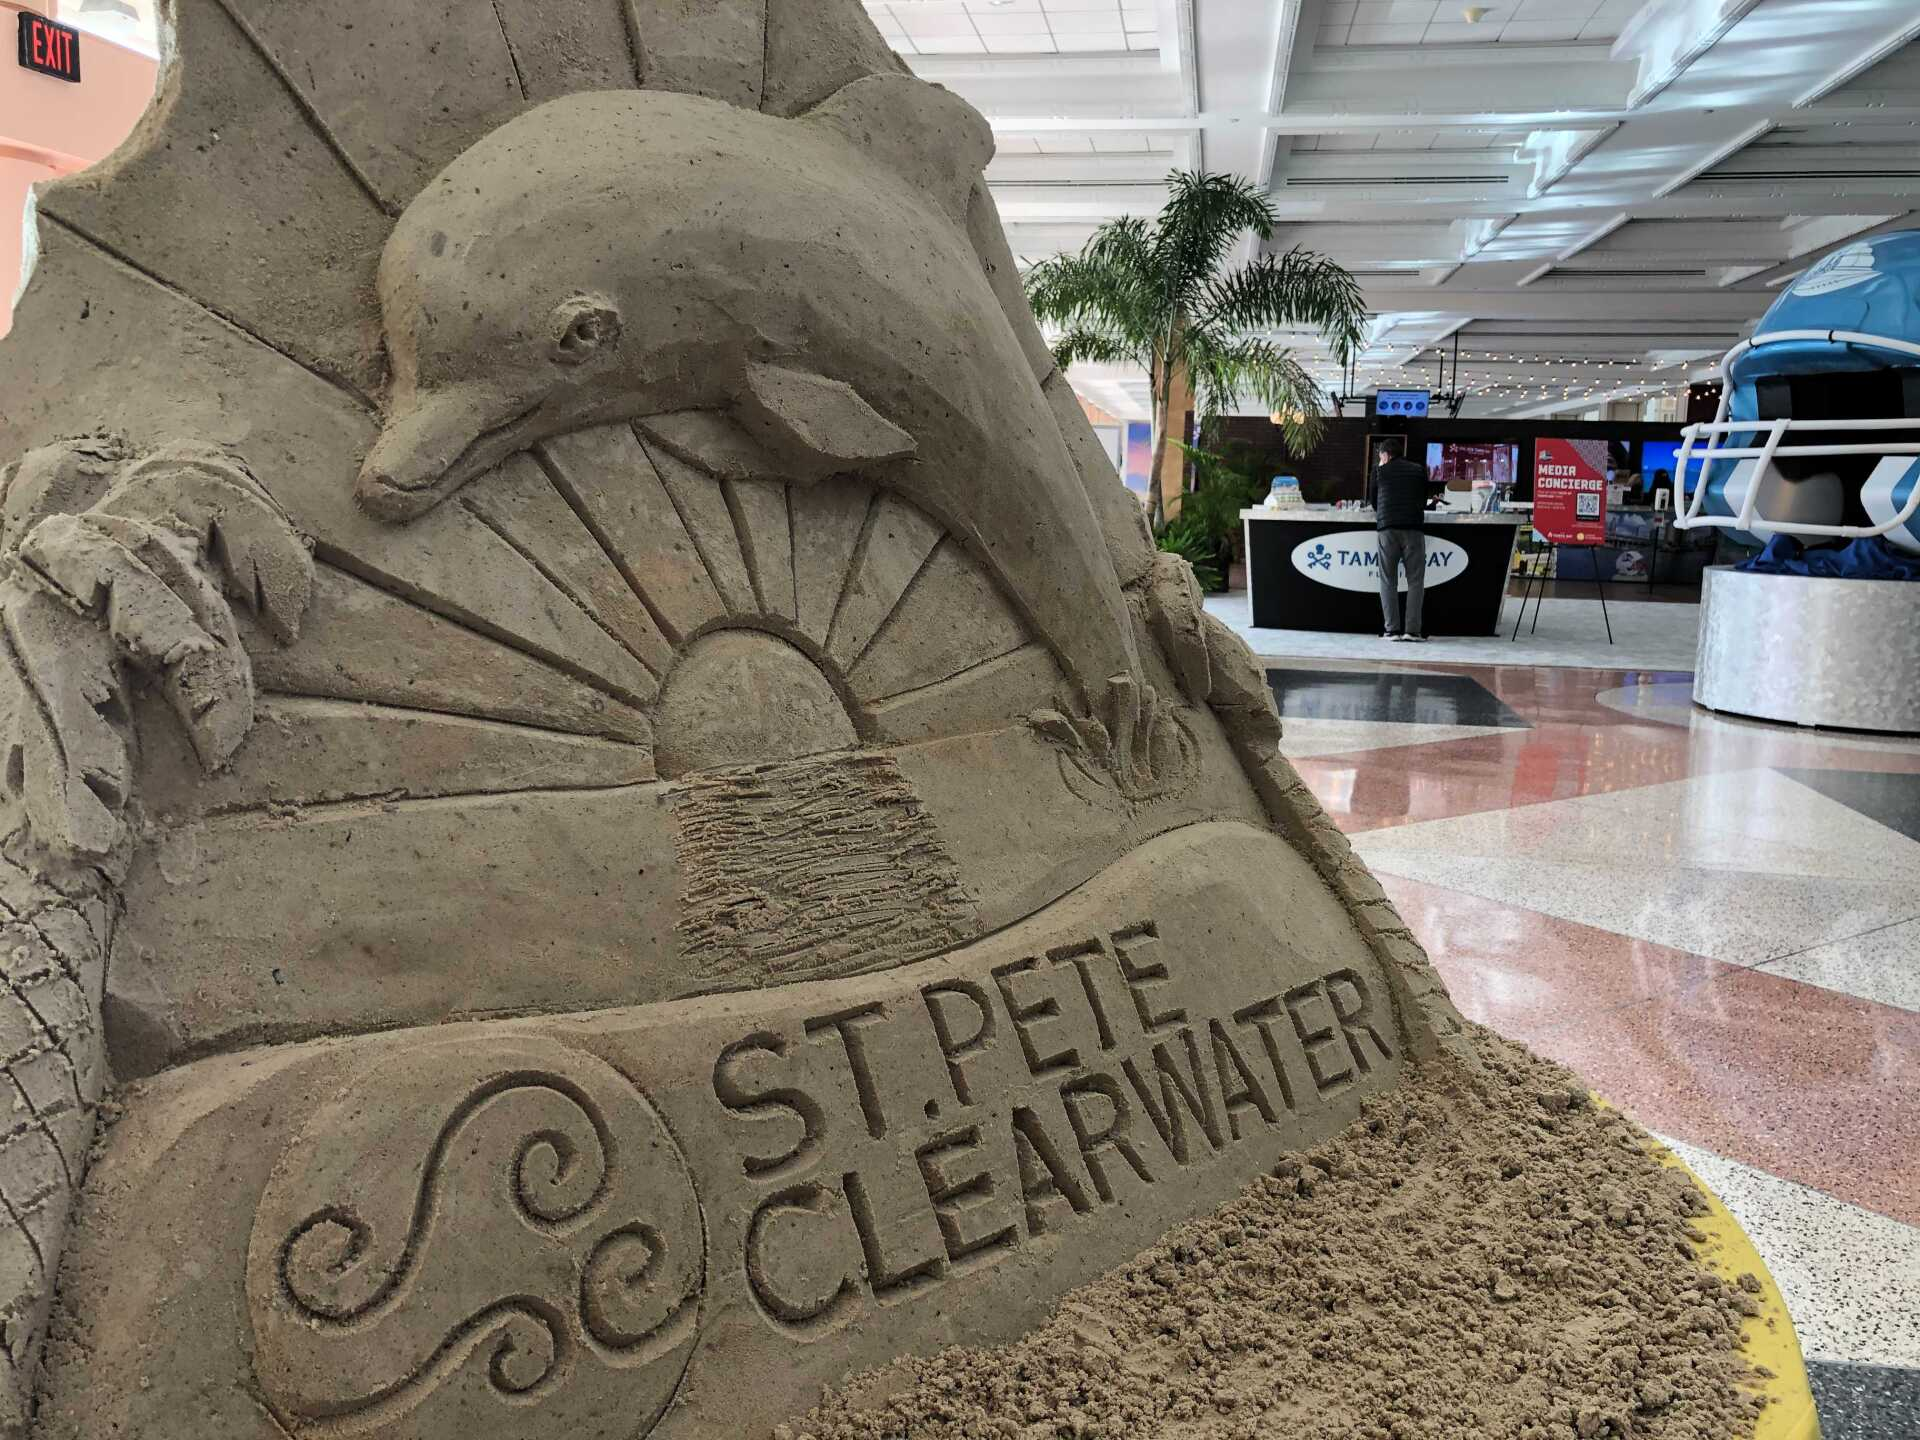 Visit St Pete Clearwater exhibit in the convention center 1.jpg